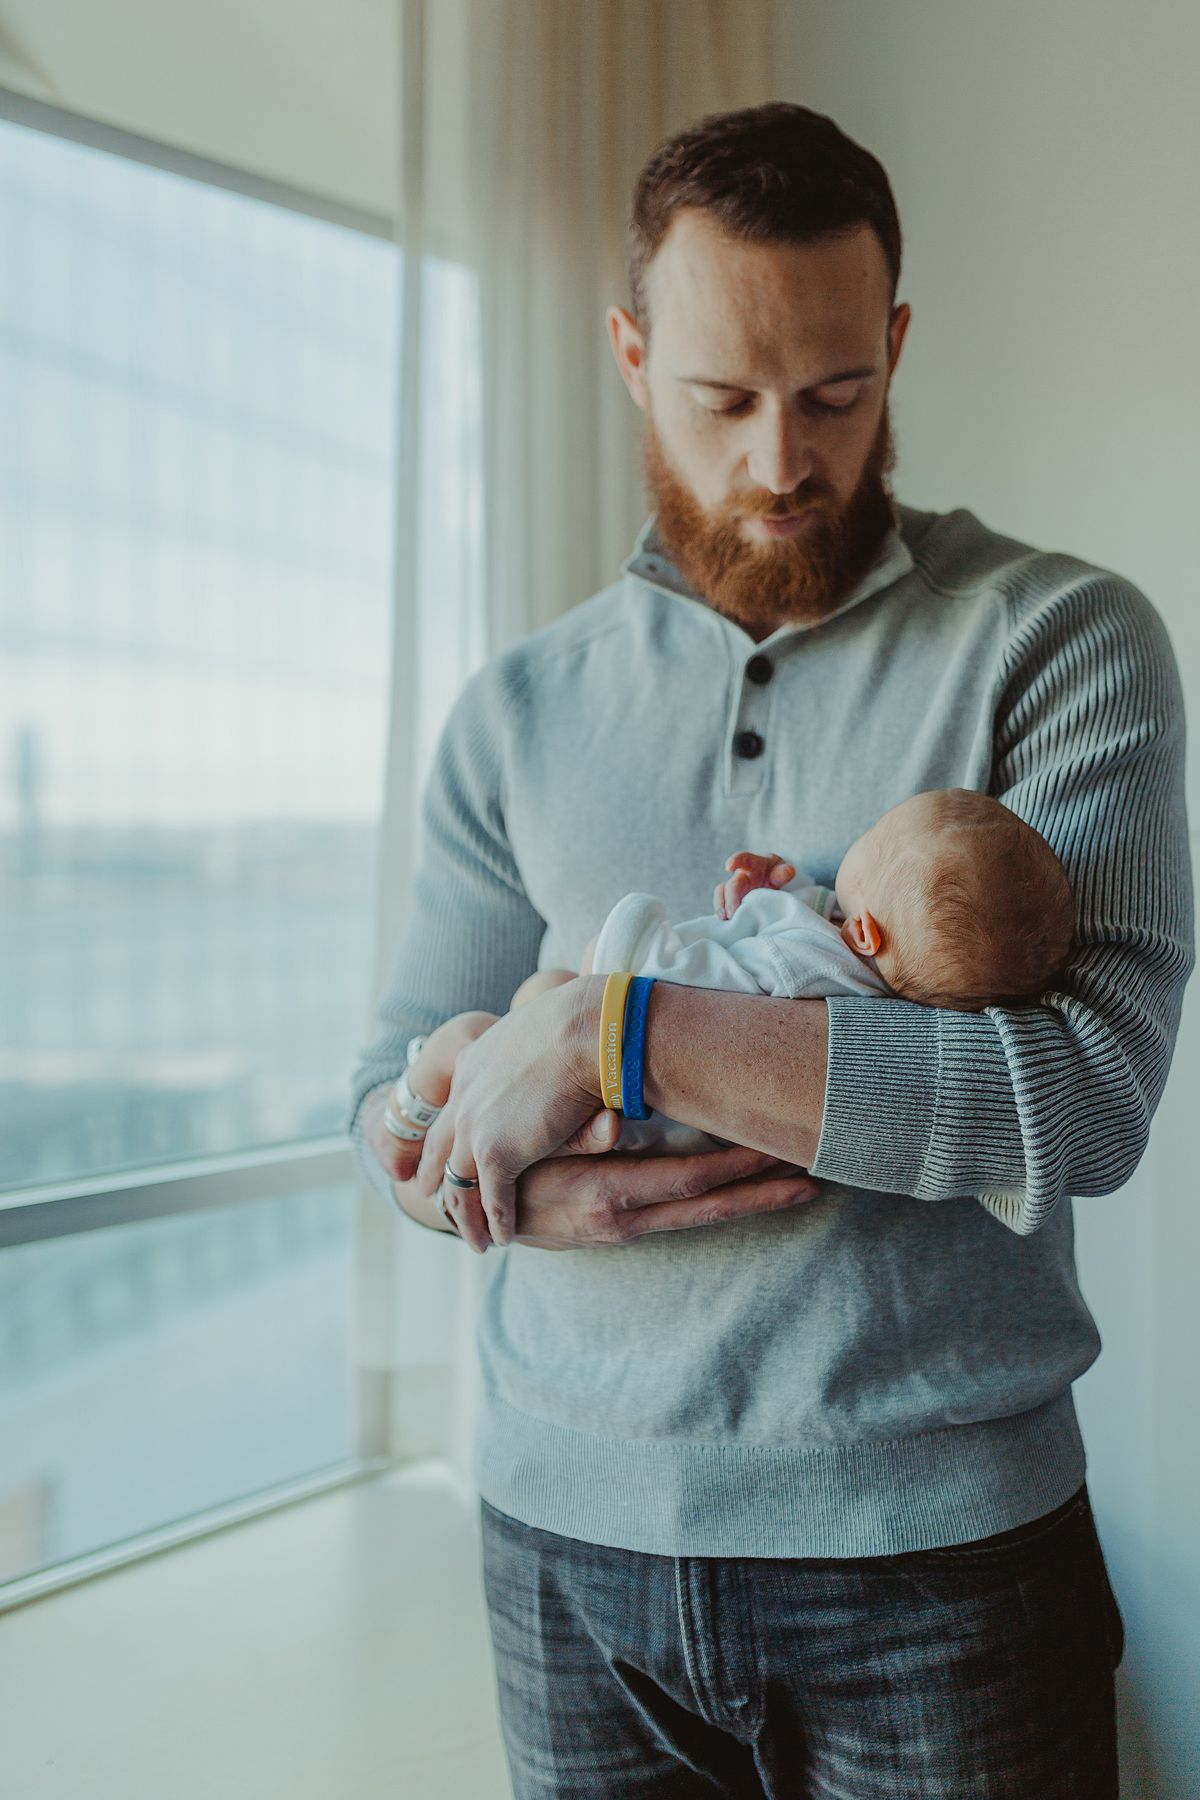 fresh 48 photo of newborn baby boy and his dad standing by bright nyc hospital window when baby was 2 days old. photo by nyc family and newborn photographer krystil mcdowall